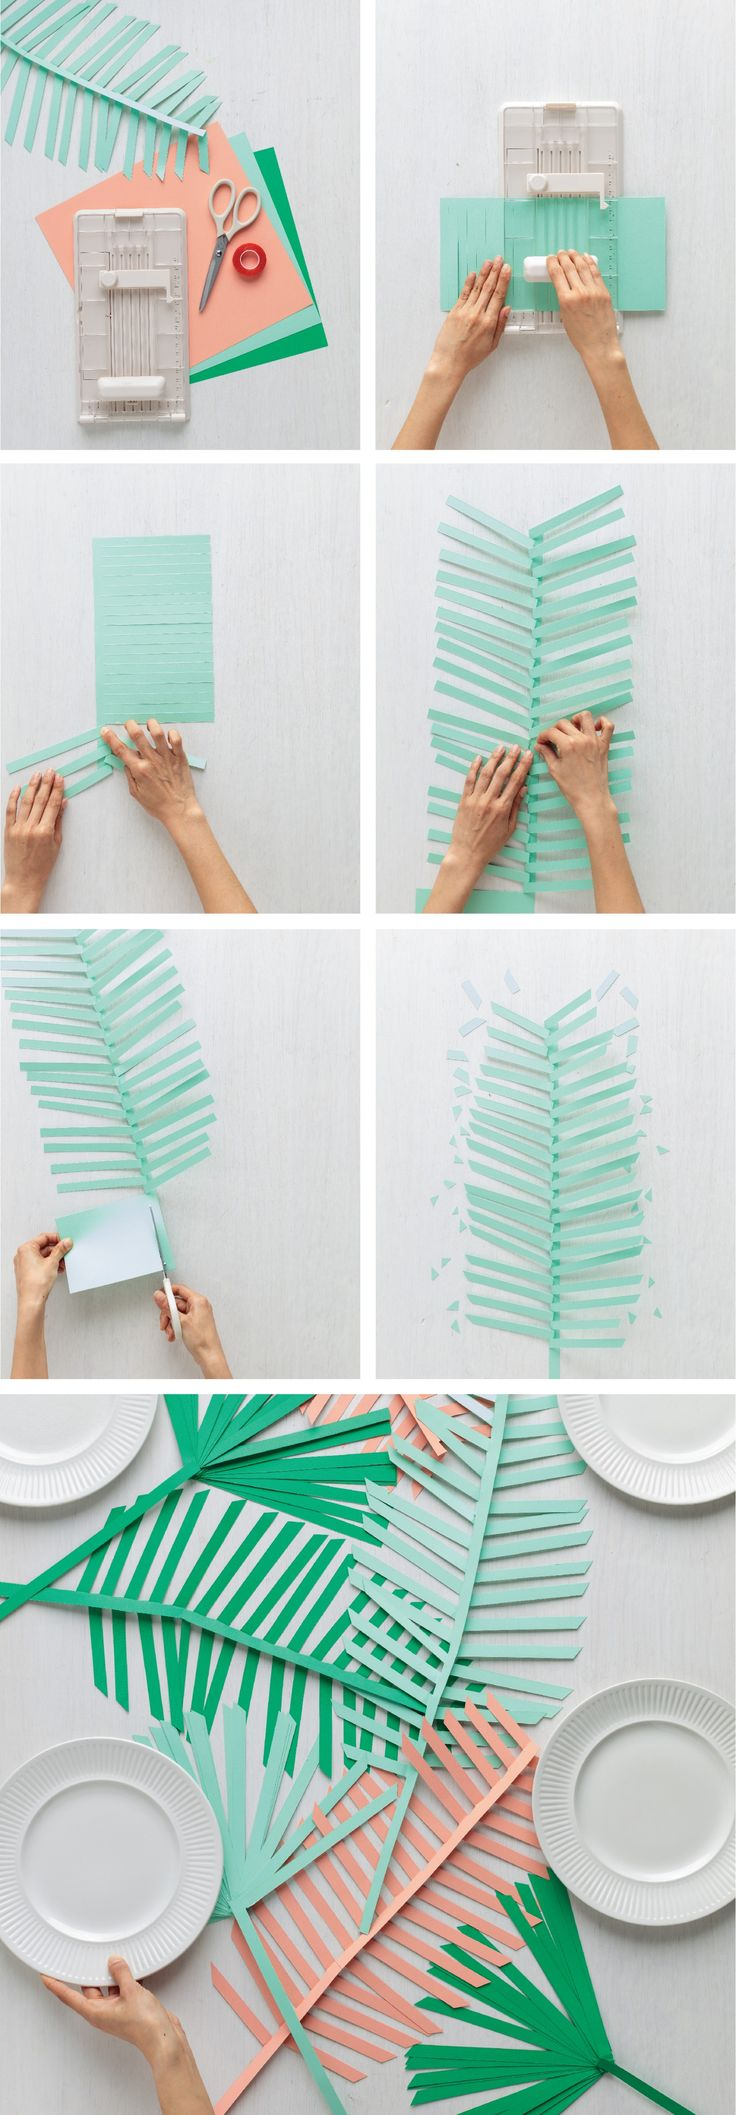 2104 best images about diy and tutorials on pinterest - Tipos de papel manualidades ...